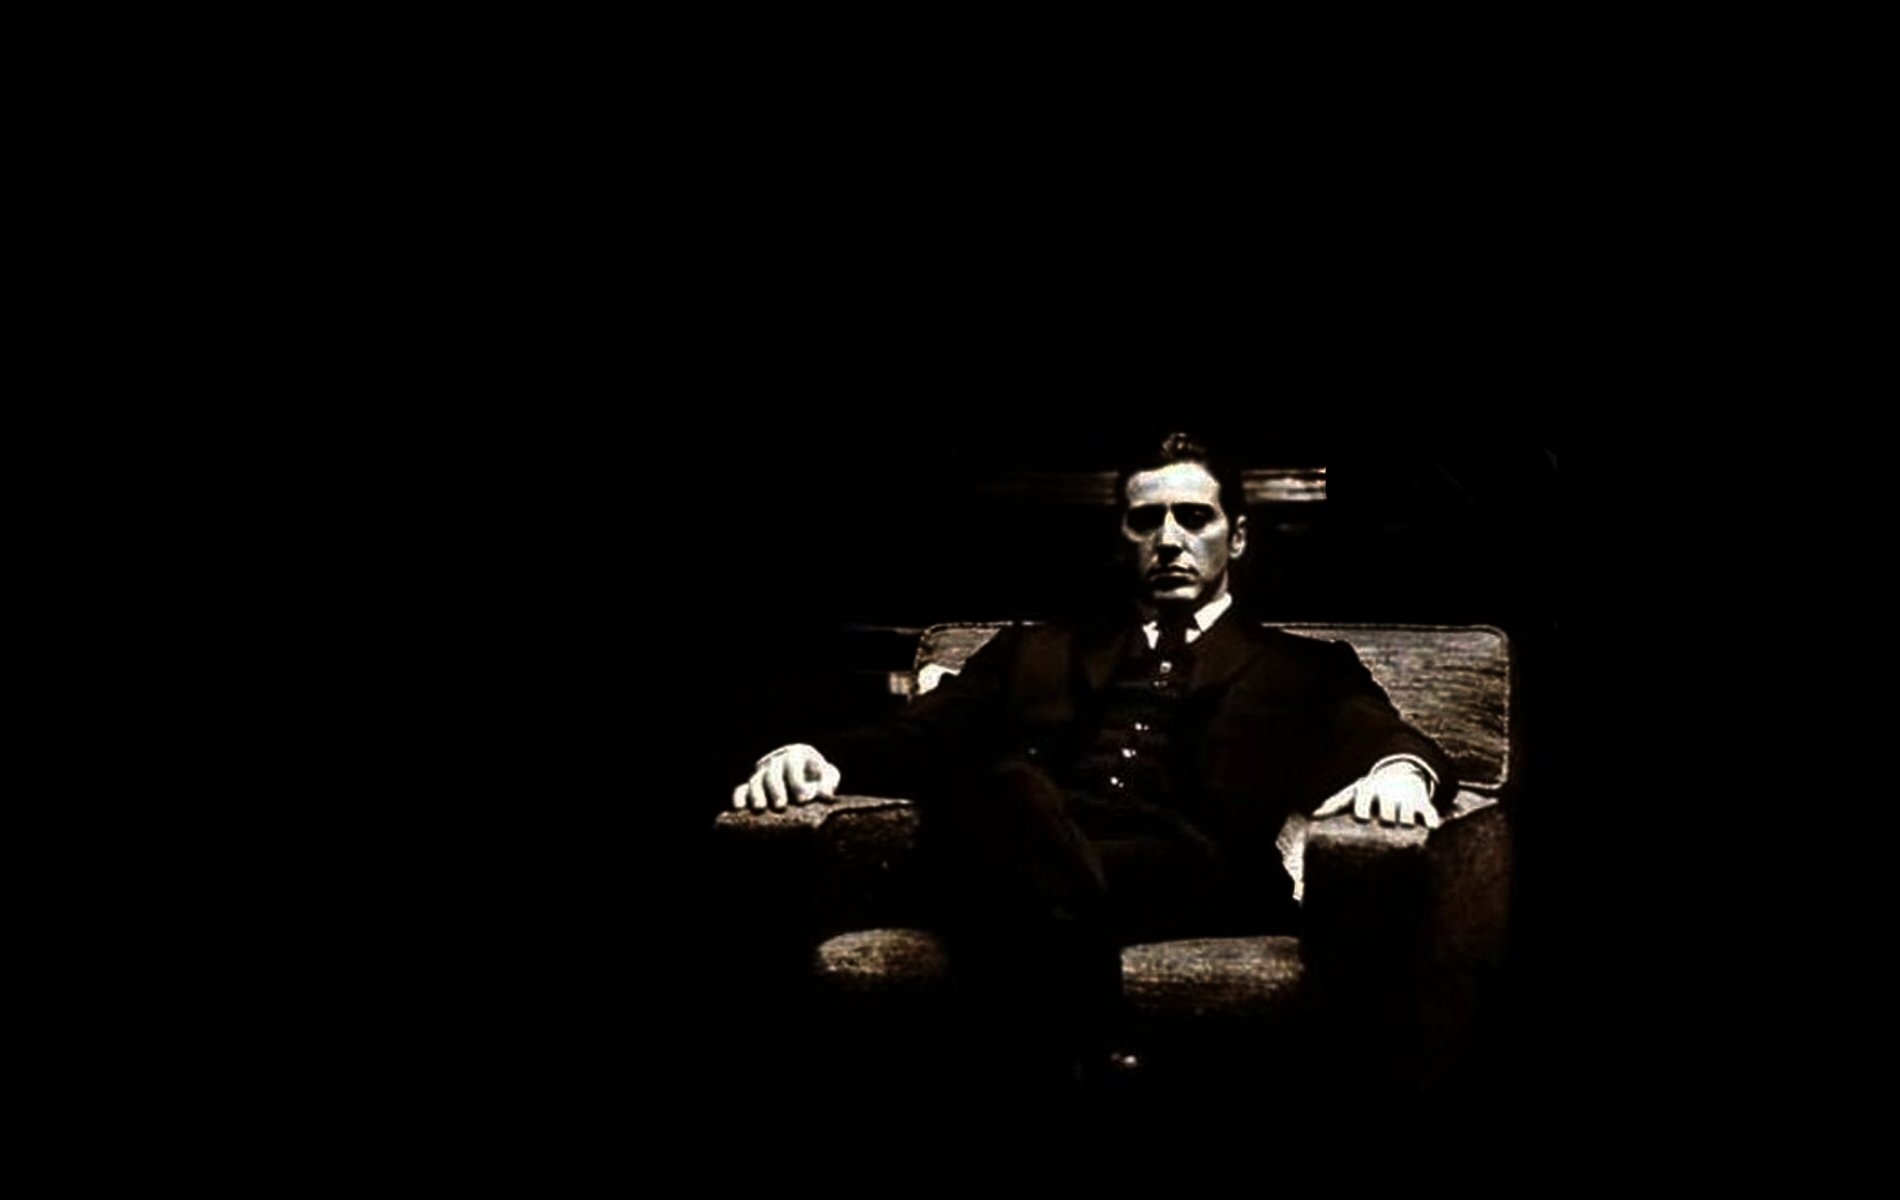 26 The Godfather Fondos De Pantalla Hd Fondos De